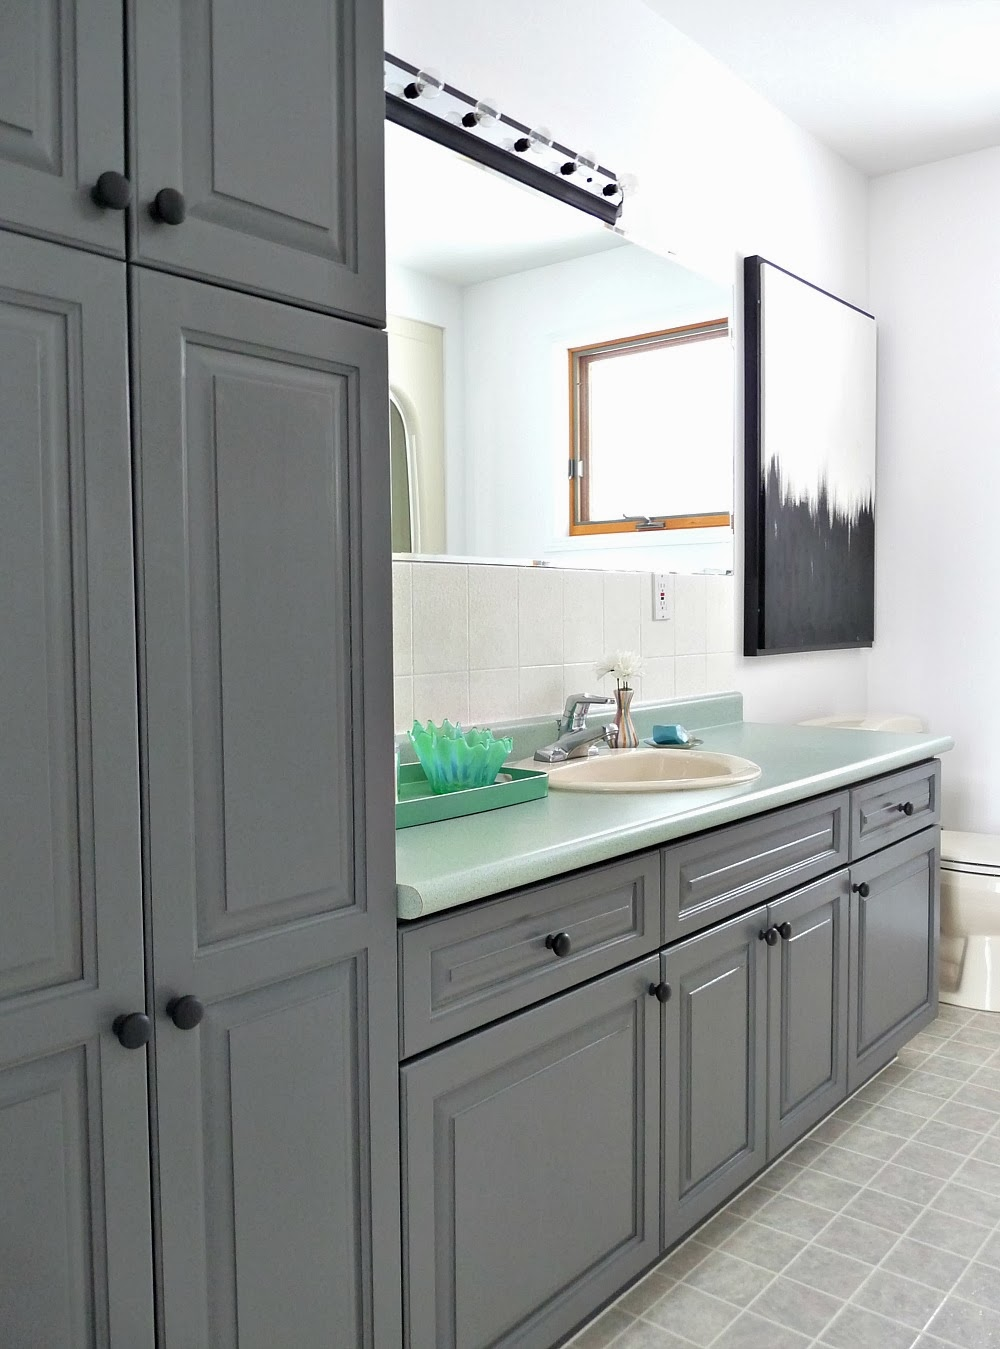 Bathroom Makeovers Ni a budget-friendly bathroom makeover using paint | dans le lakehouse